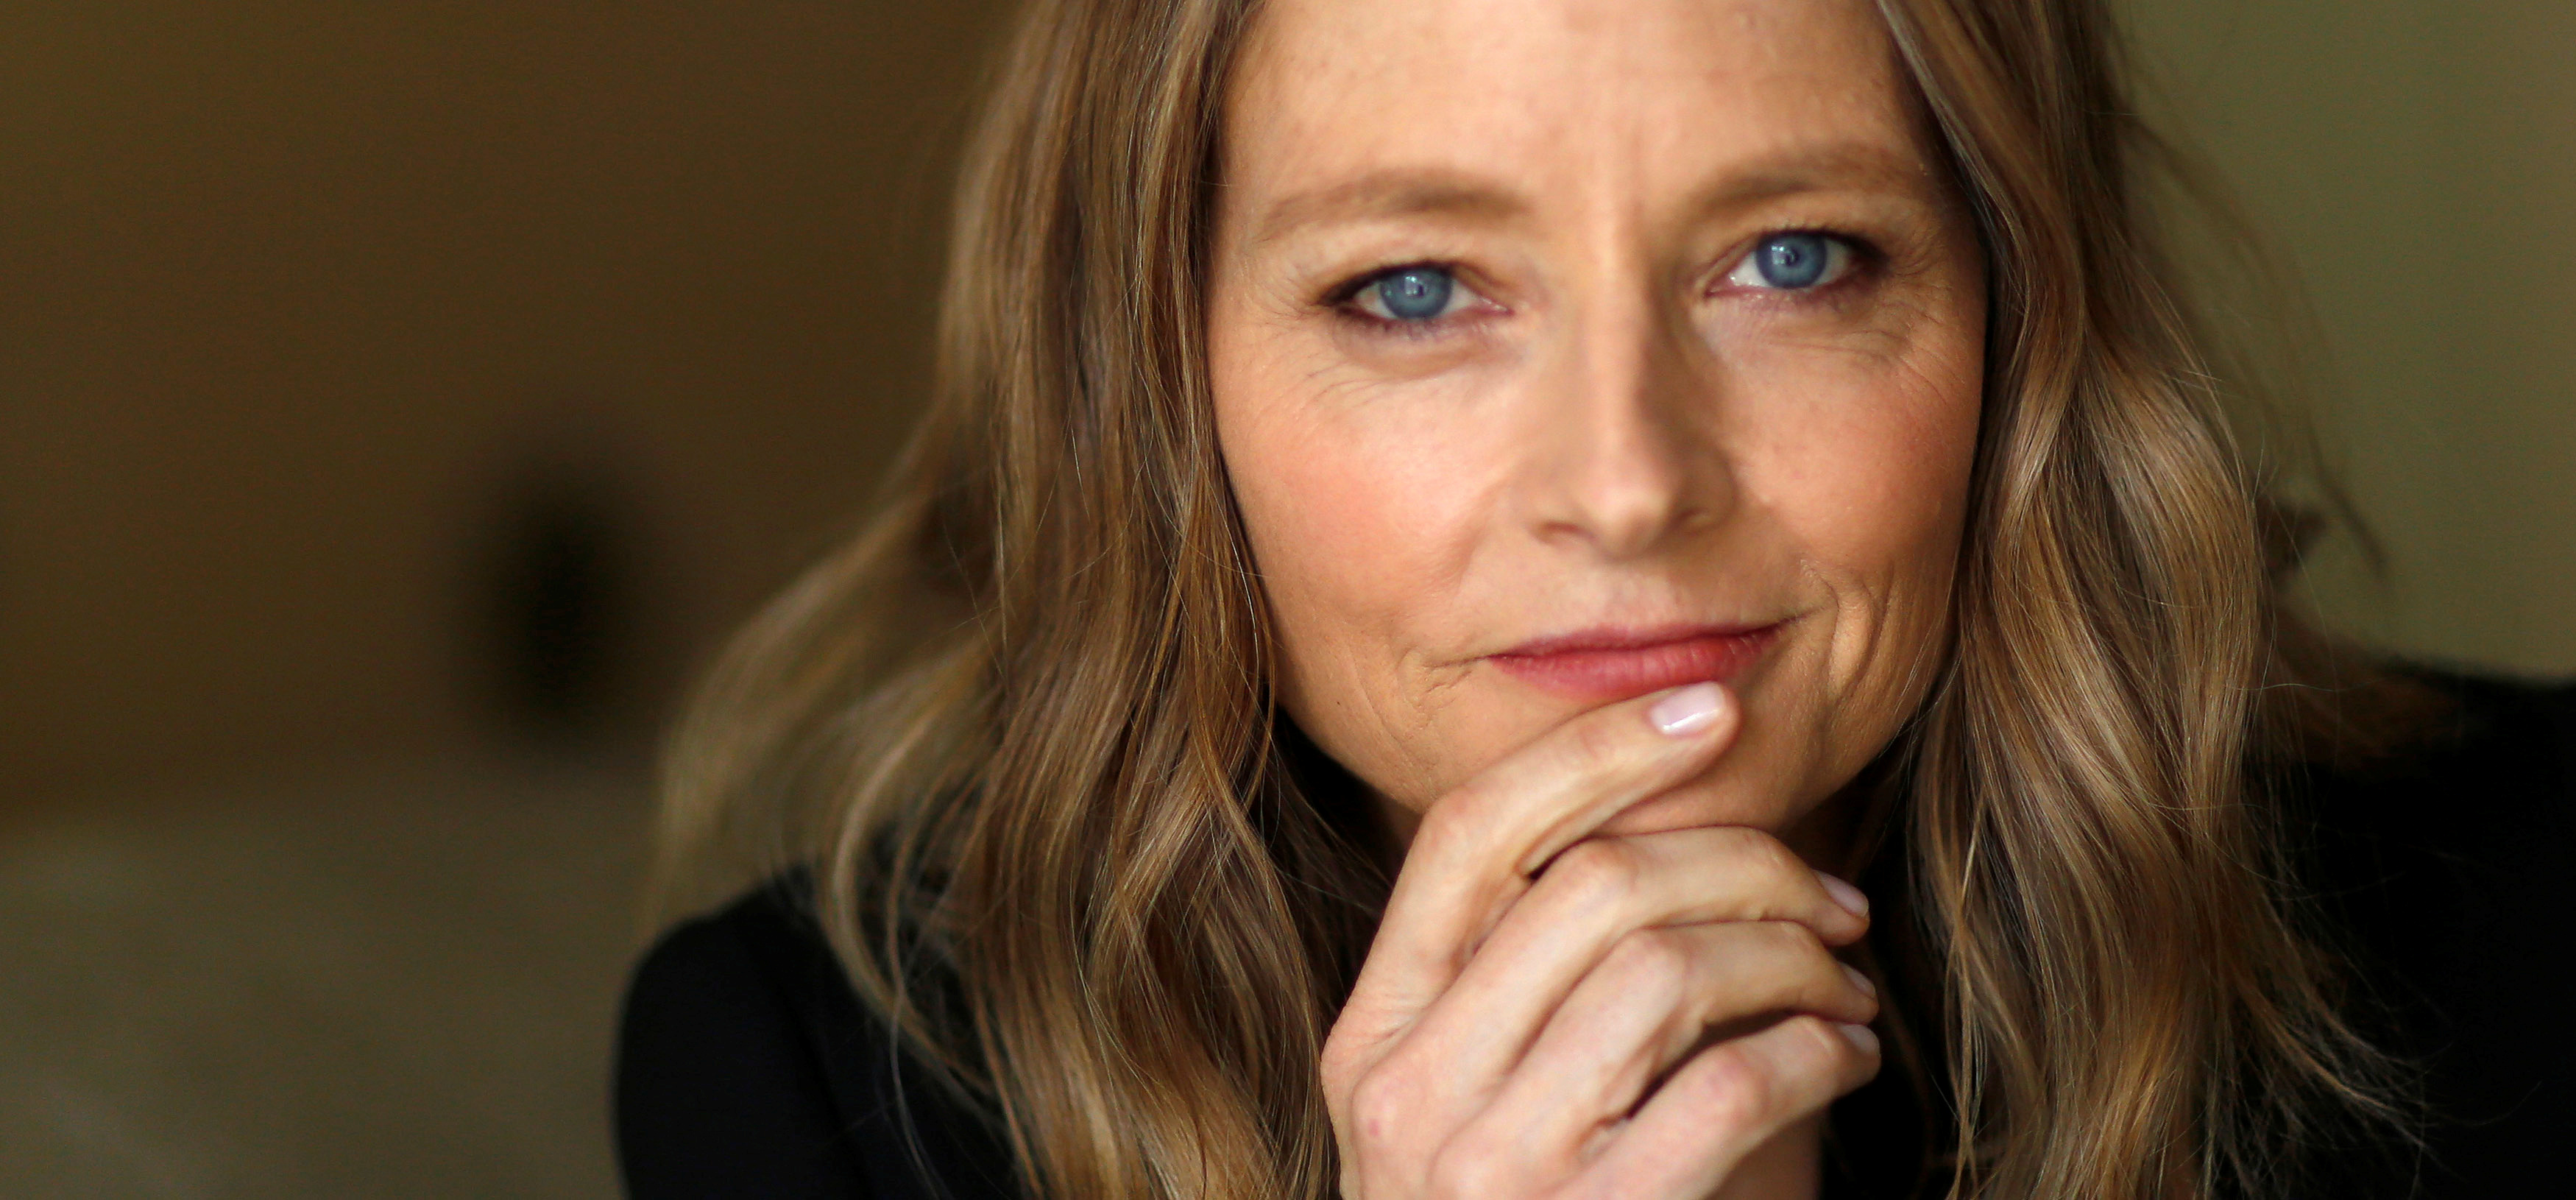 Jodie Foster again with a broken heart 11.09.2009 68